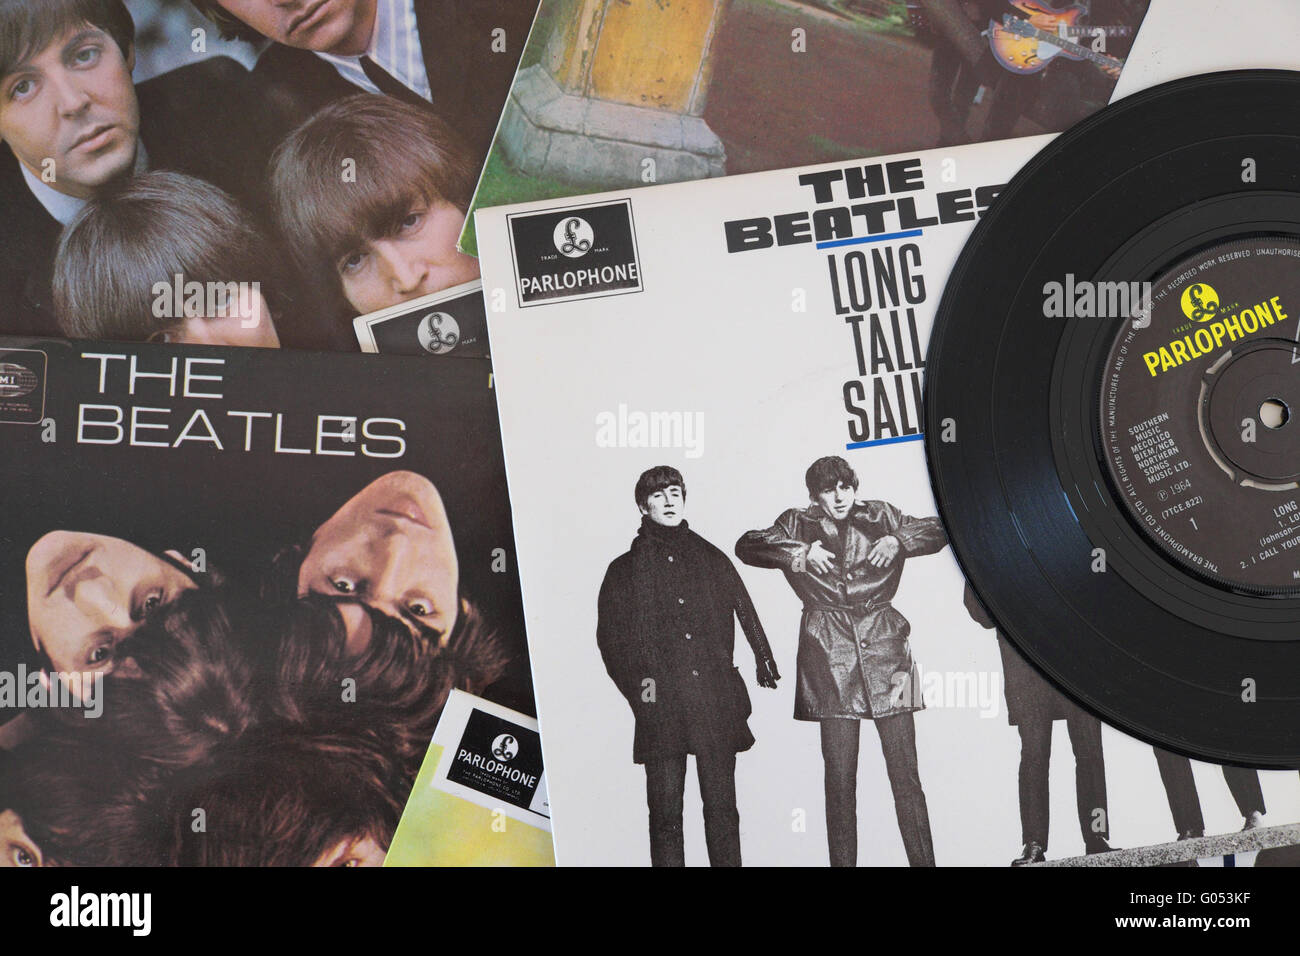 The Beatles a selection of Beatles records - Stock Image